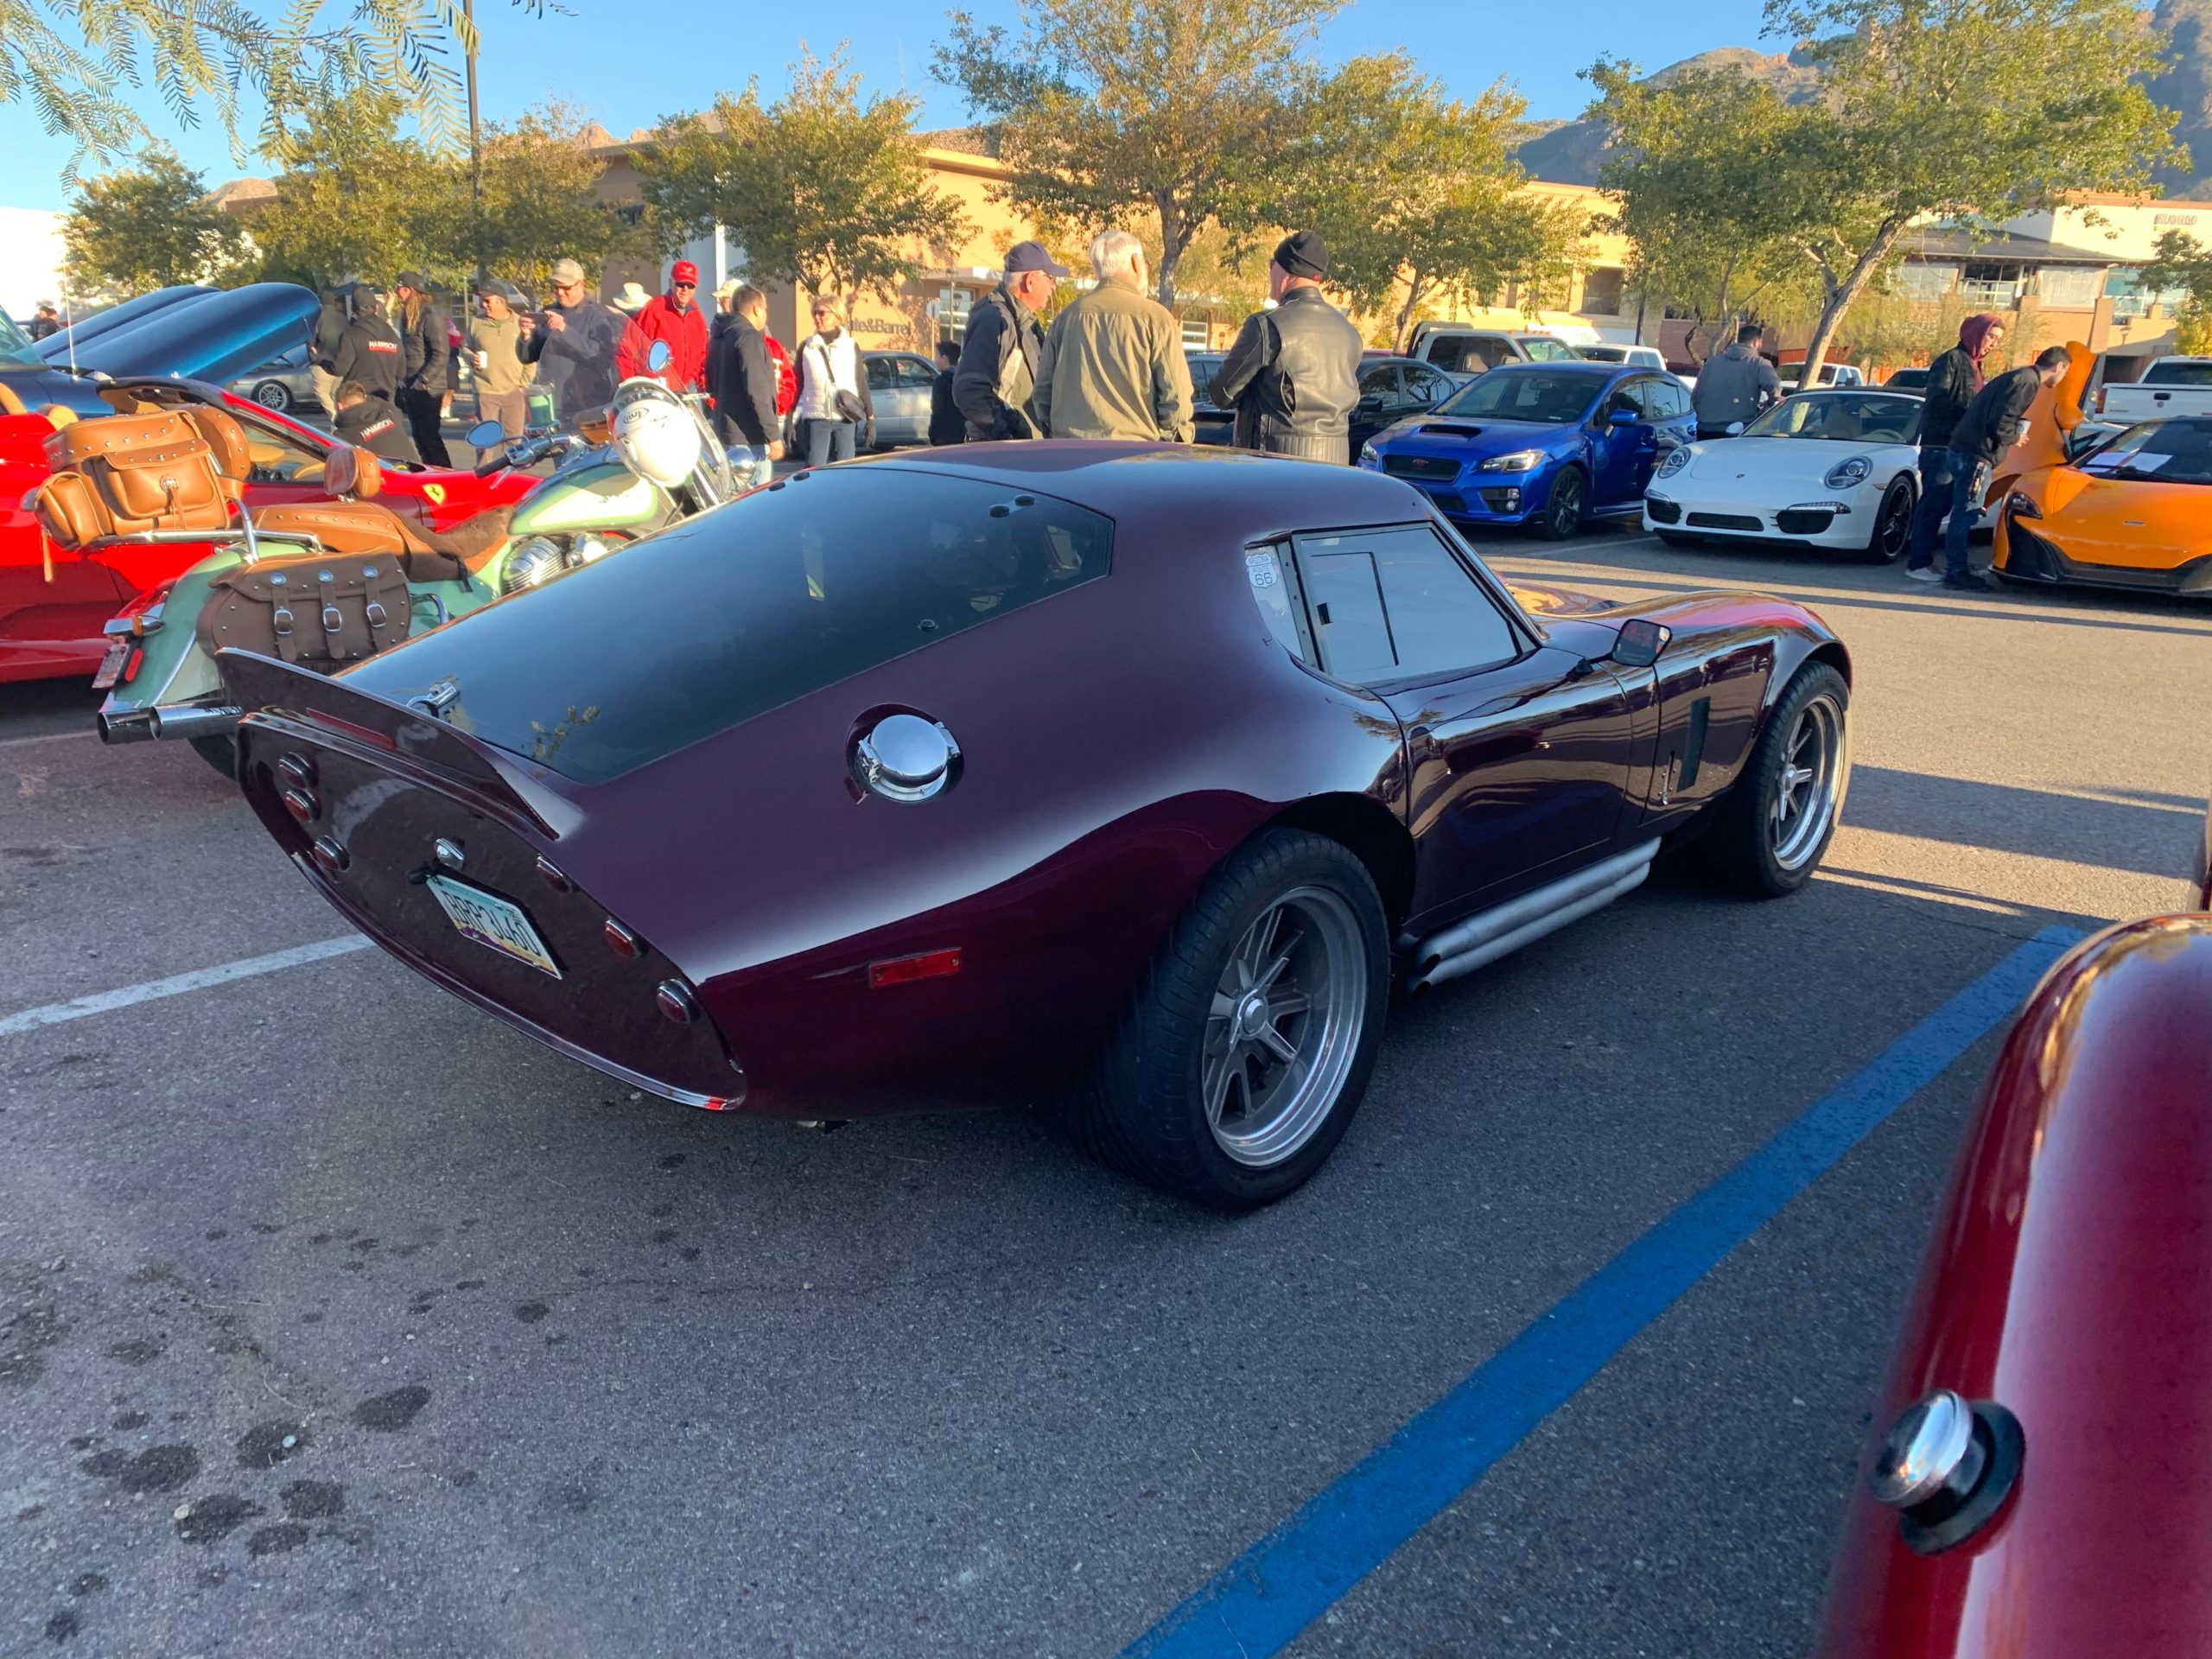 Old 1964 Shelby Daytona Coupe found at my local Cars and Coffee meet!